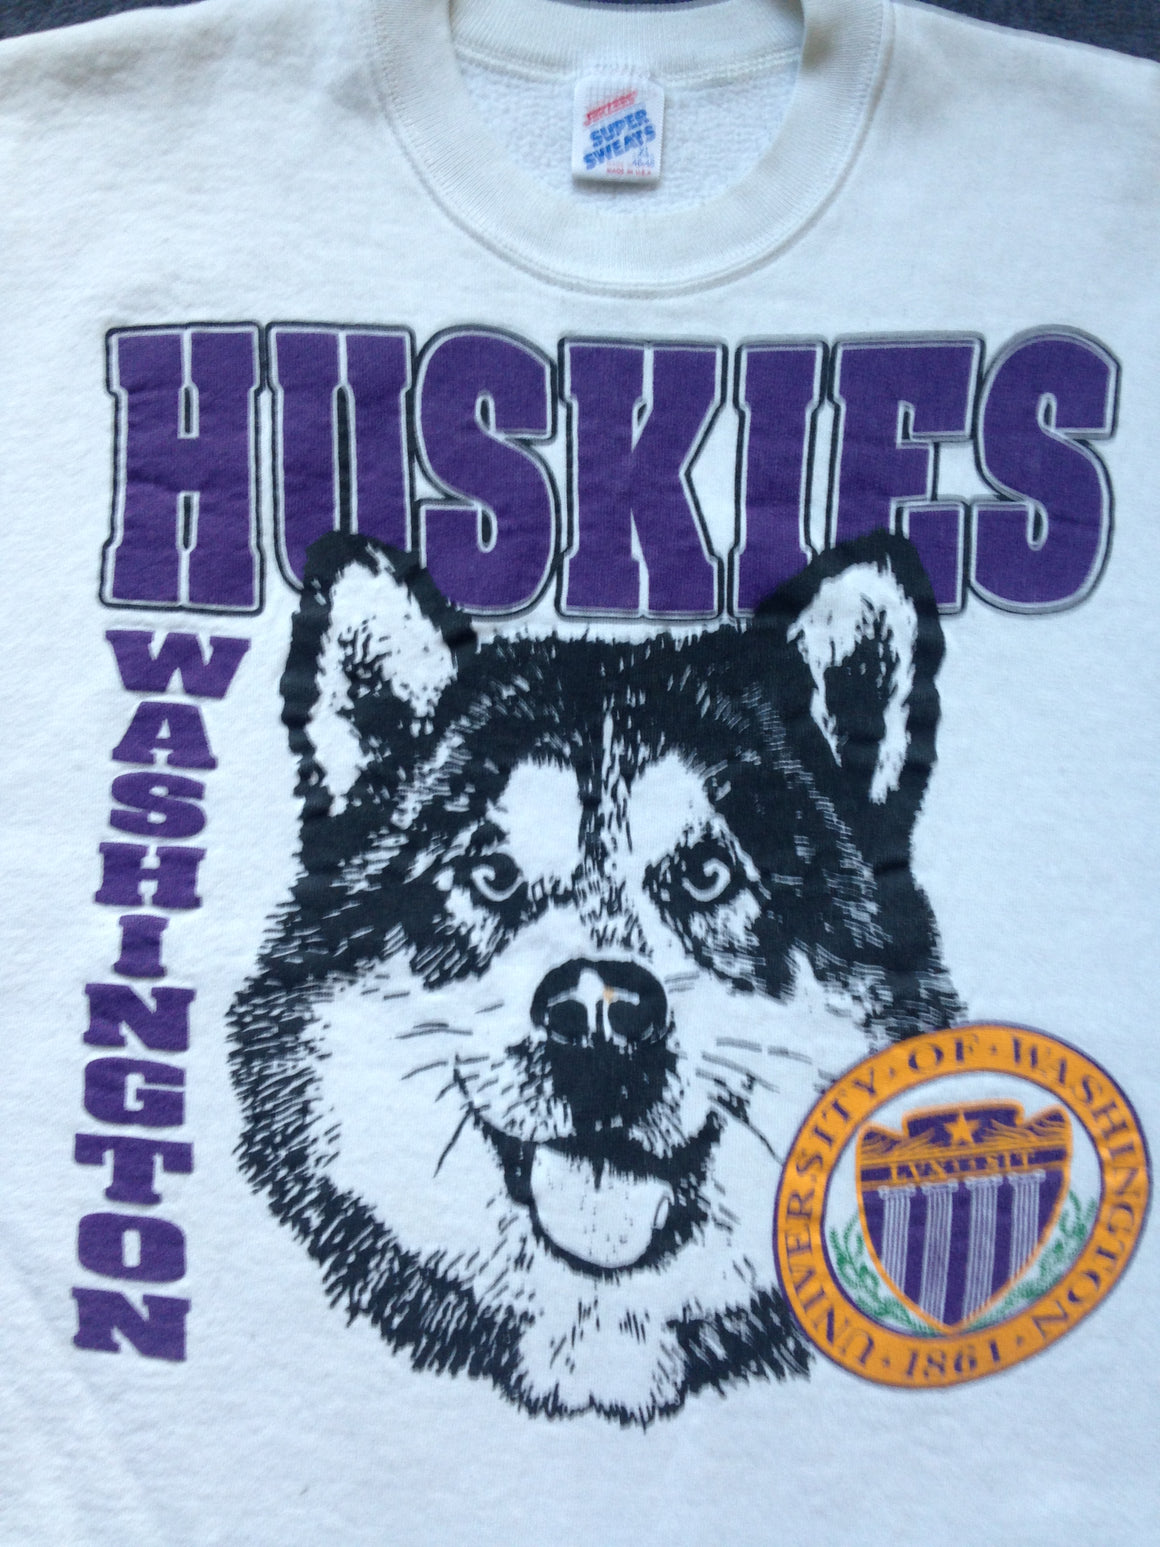 Washington Huskies cutoff sweatshirt - XL